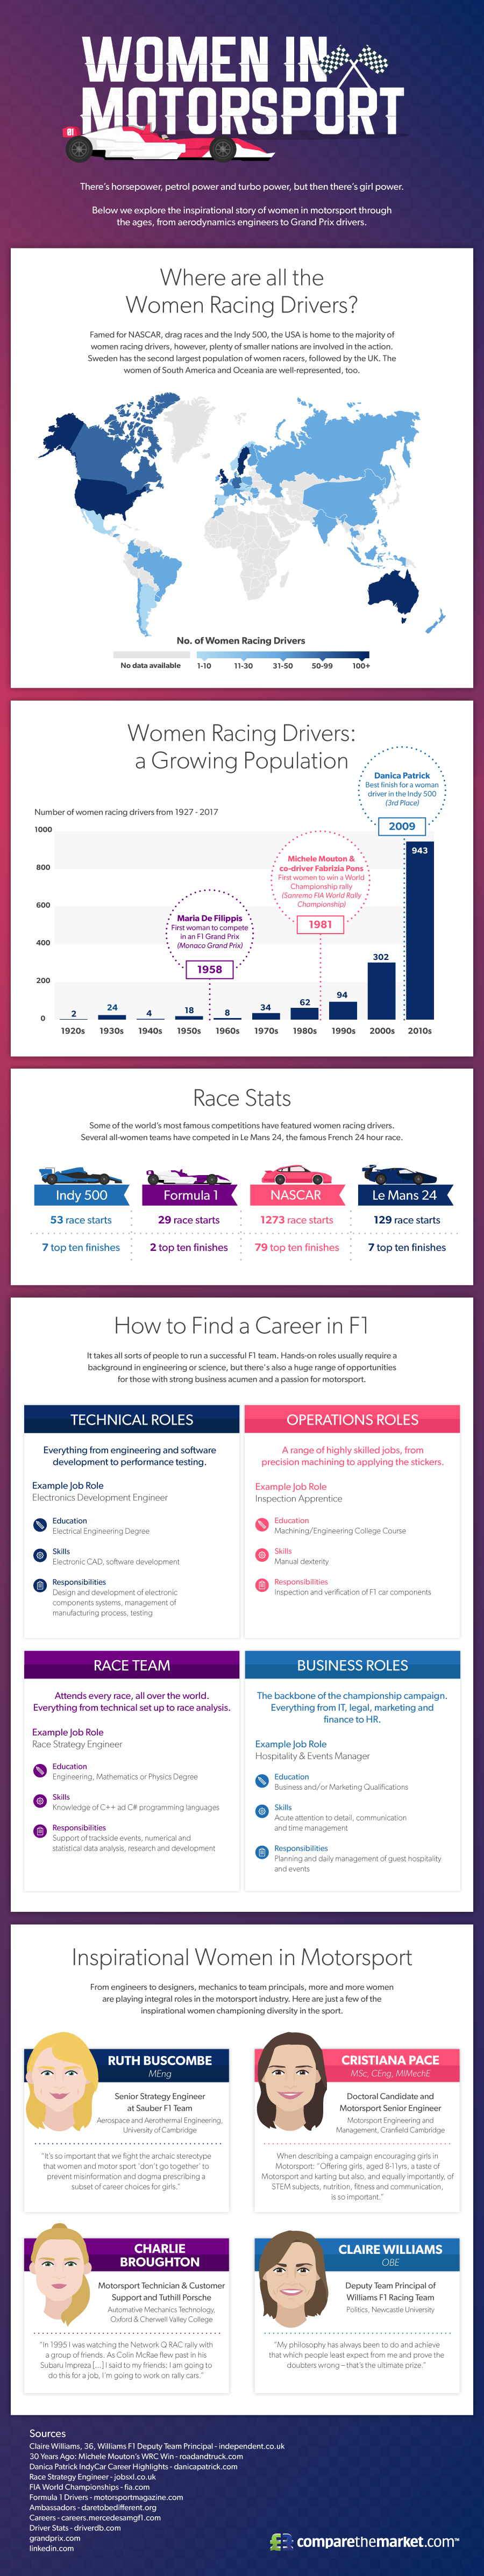 Females Inspiring in Motorsport [Infographic]